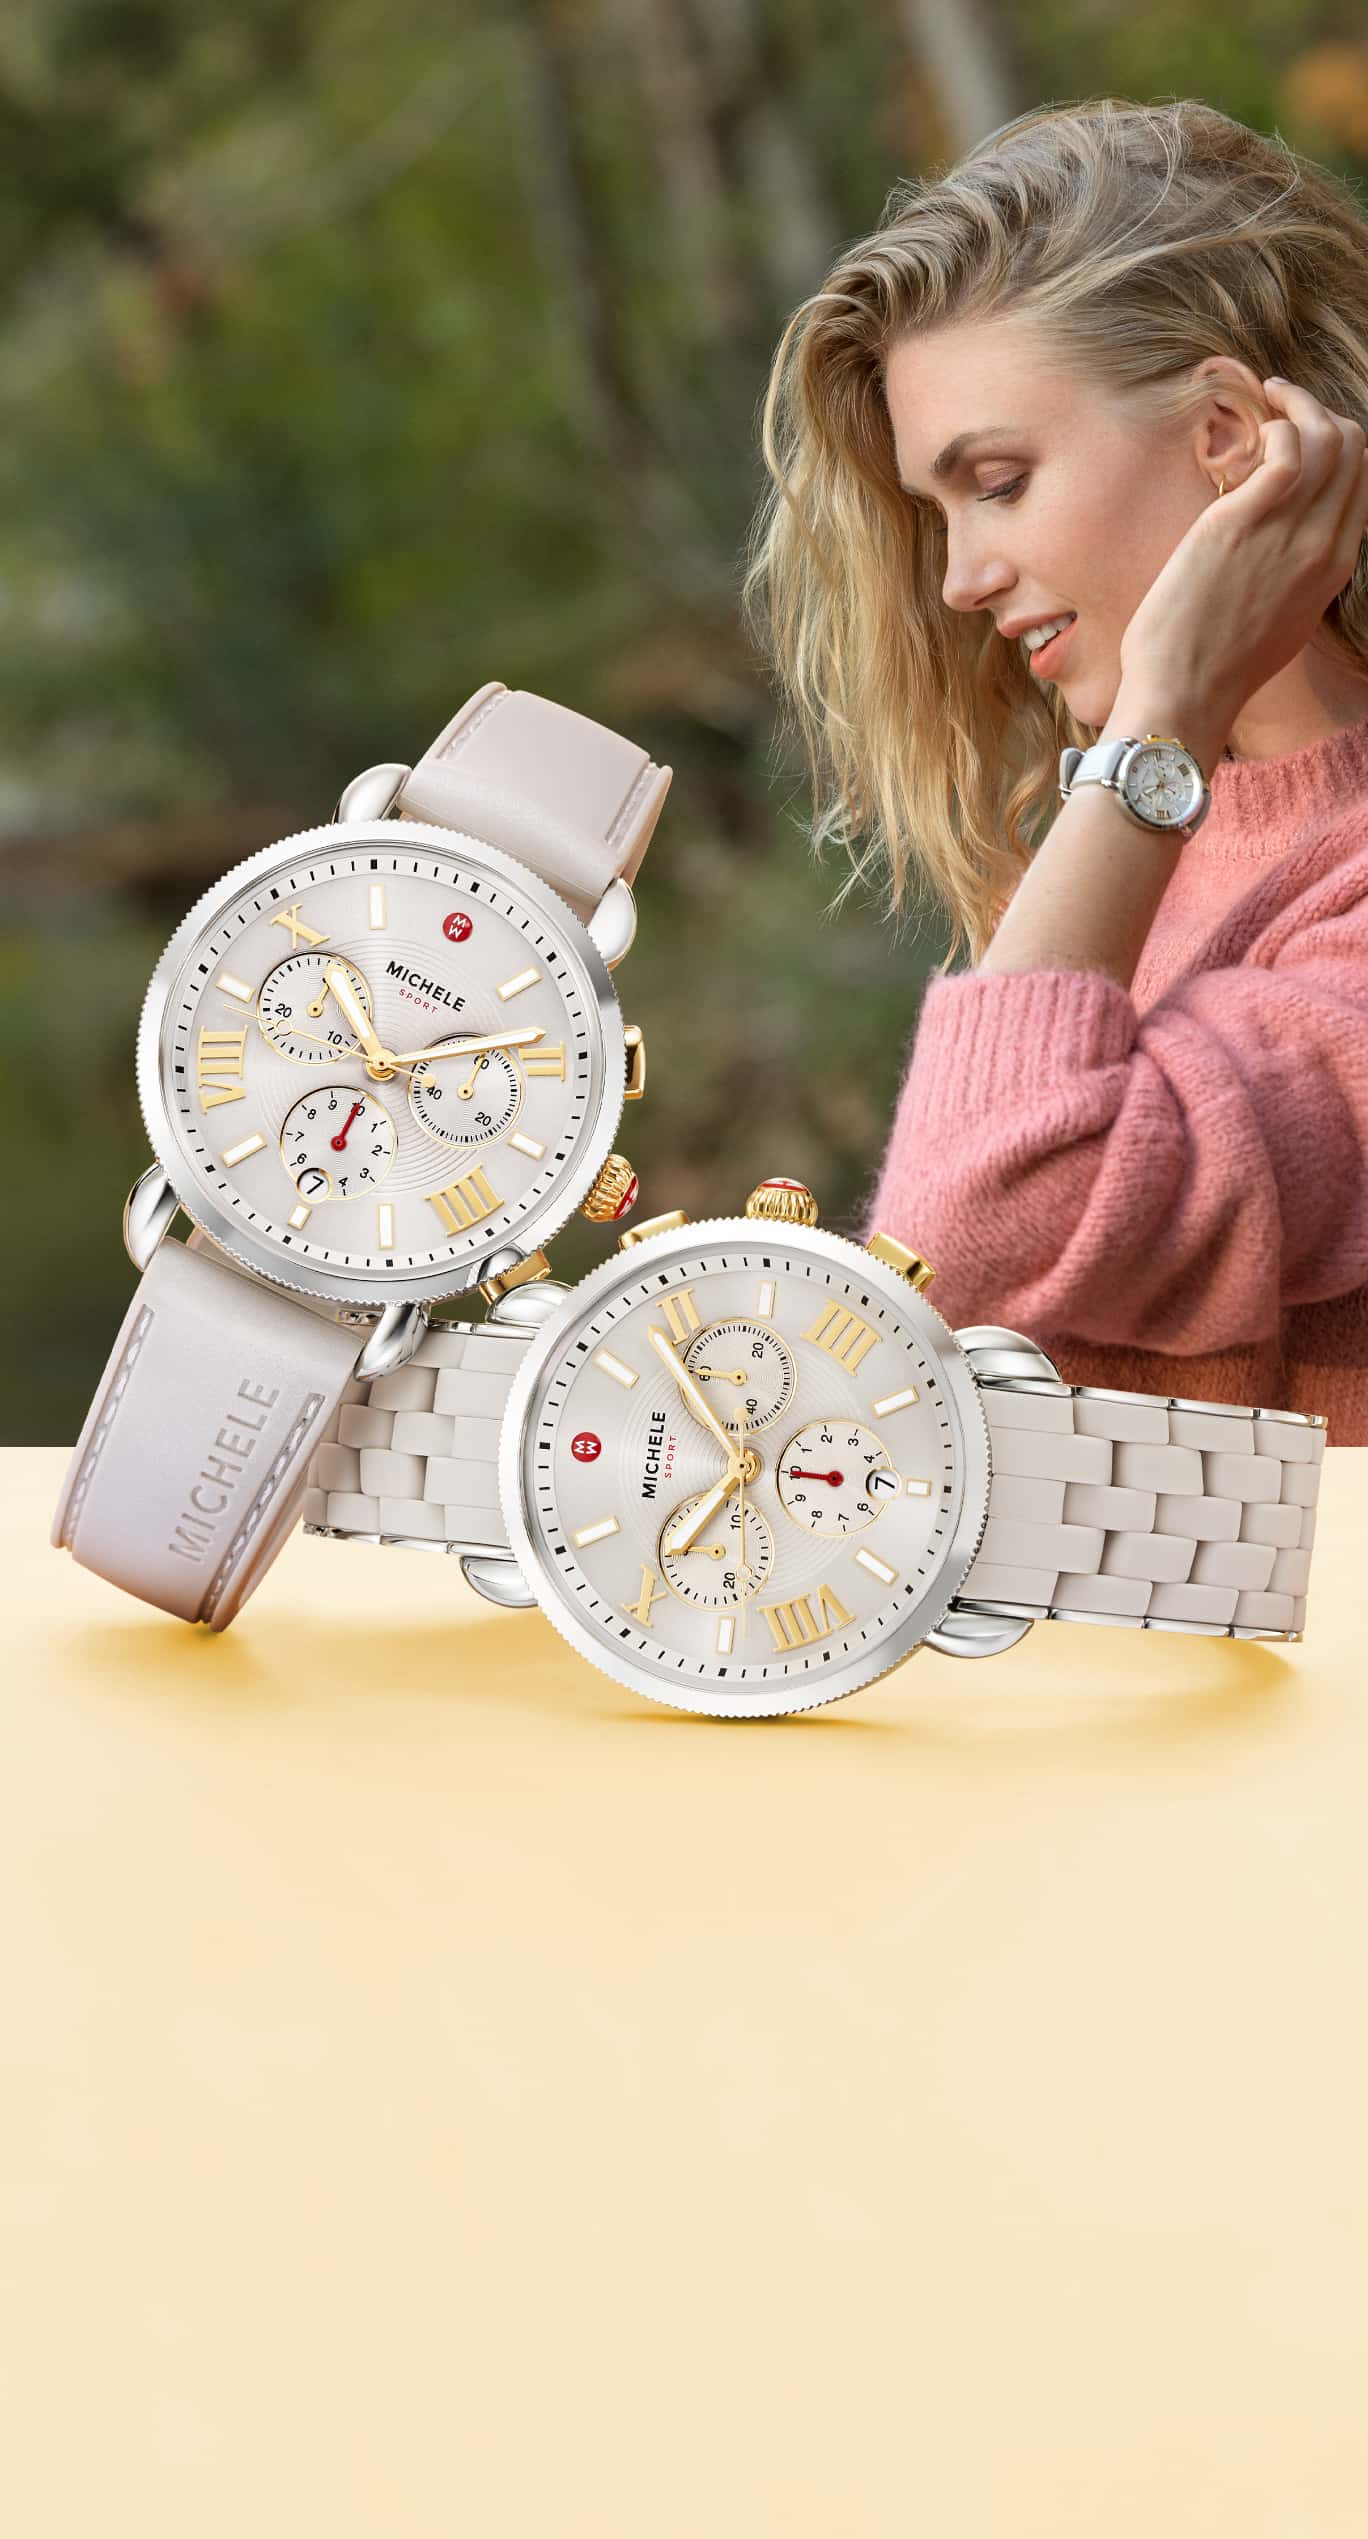 Stylish woman wearing Sporty Sport Sail watch in wheat. Two Sporty Sport Sailwatches in wheat: one with silicone-wrapped braclet and another with matte-shimmer finish.